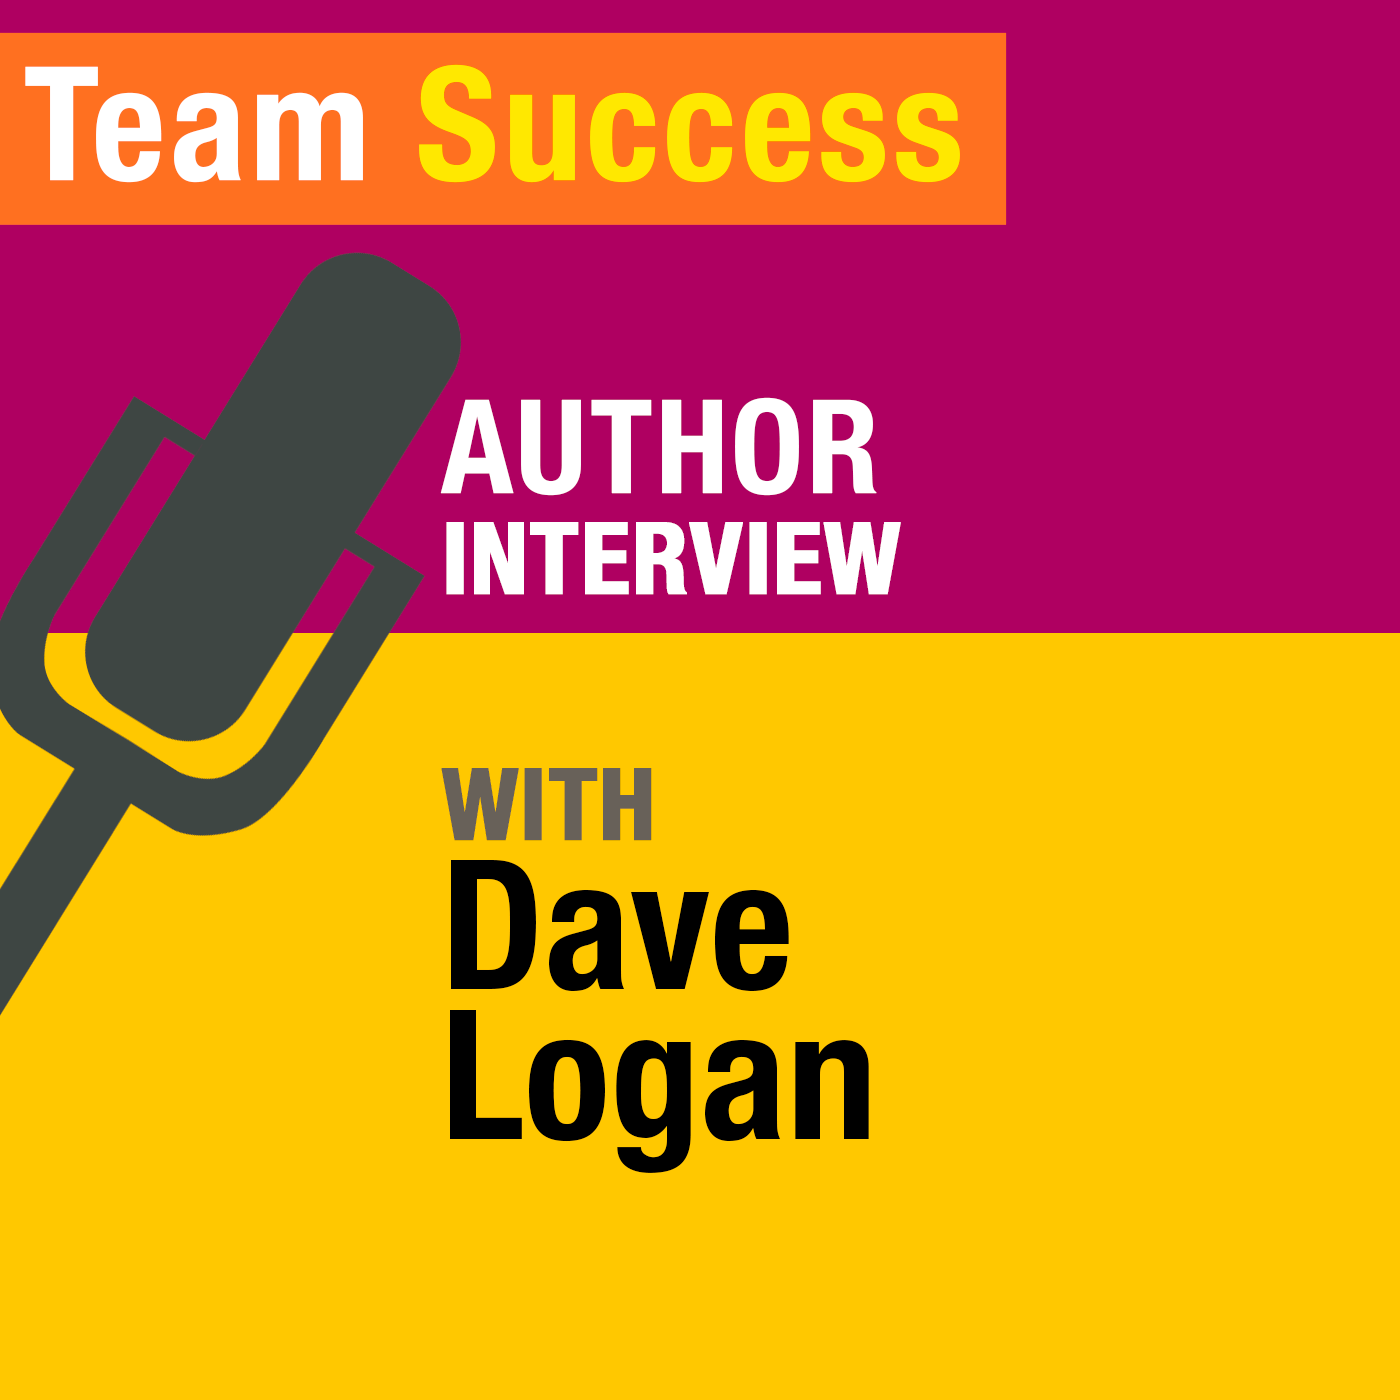 An Interview With Dave Logan - Team Success Podcast